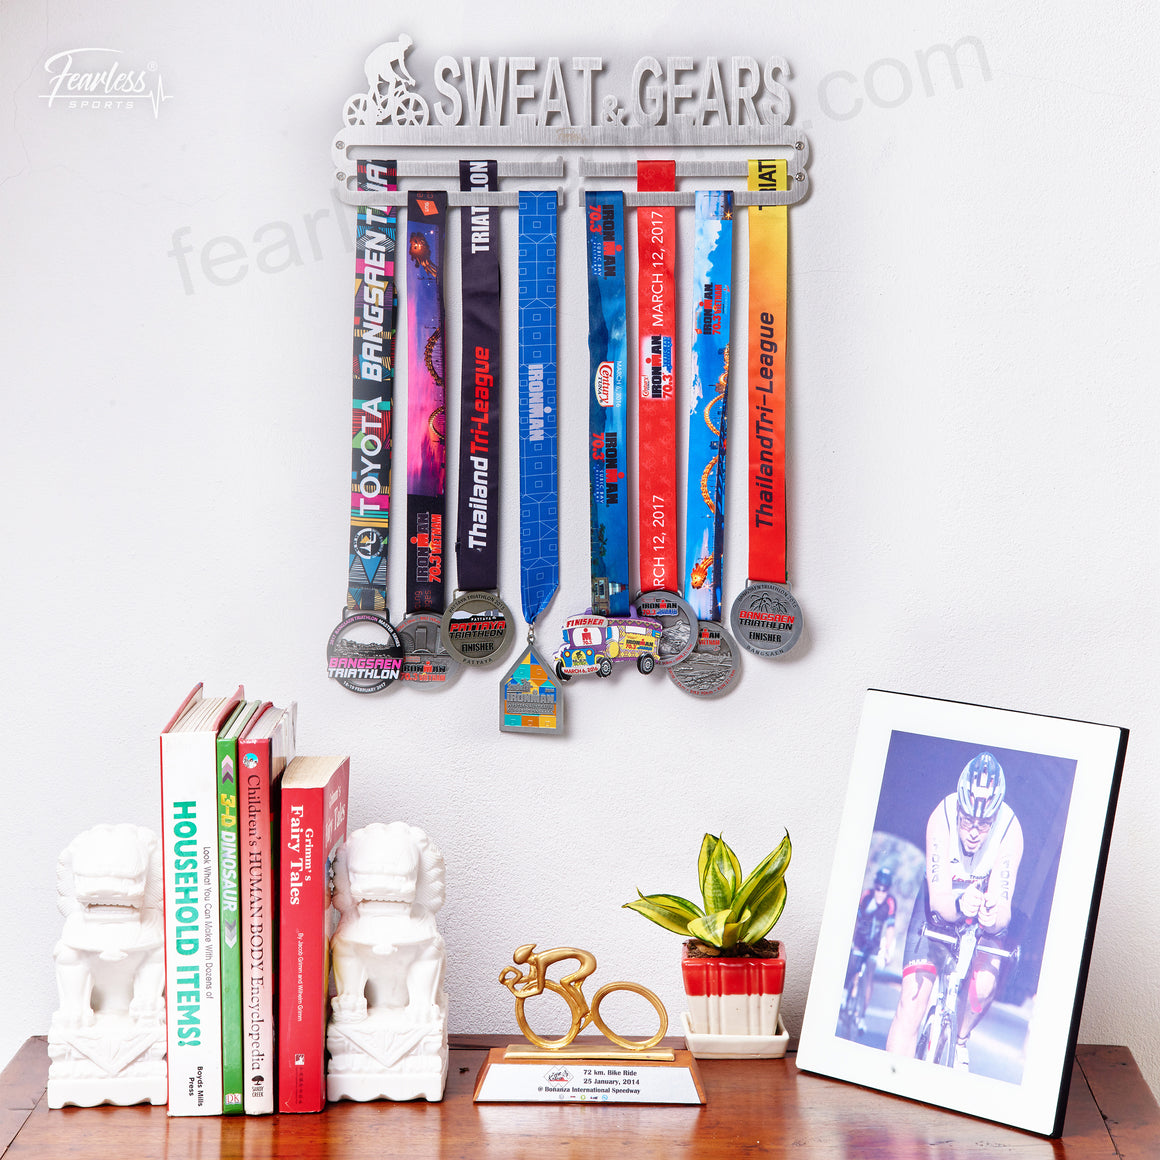 Cycling Sweat and Gears Stainless Steel Medal Display Hanger Medal Organizer ITM./ART.5181 - Fearless Sports